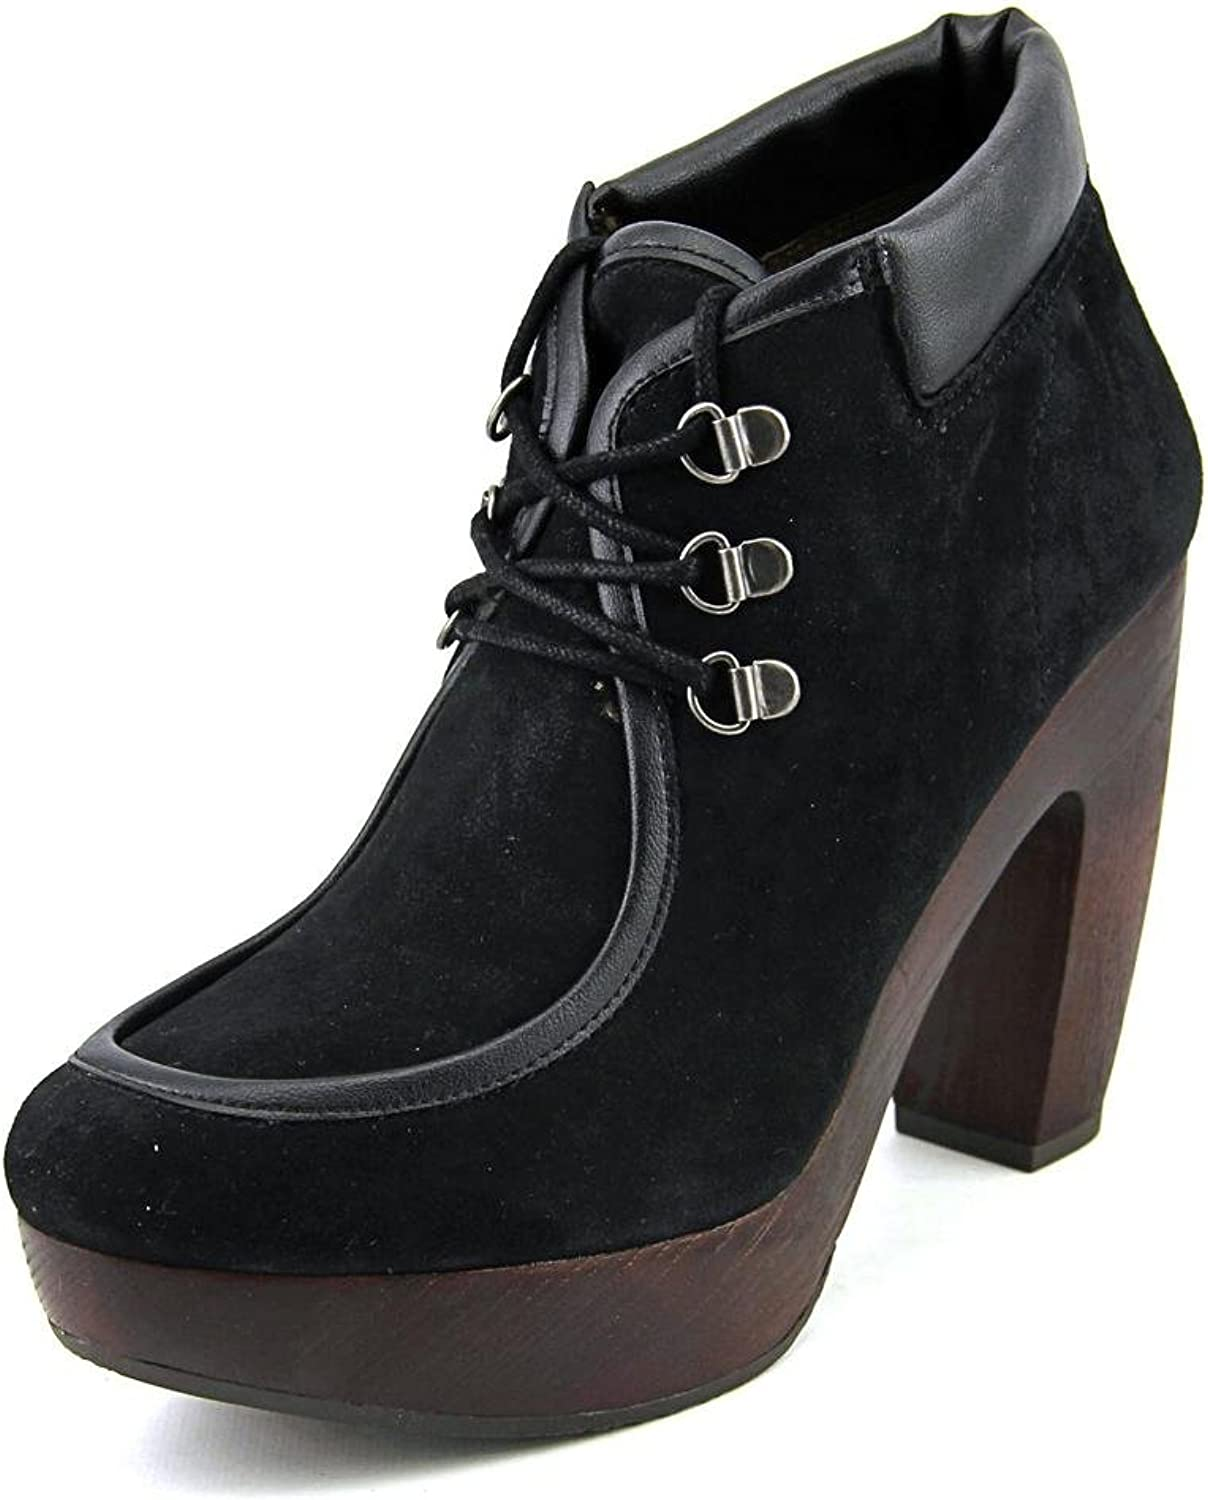 Lucky Brand Cendara Women US 7.5 Black Bootie